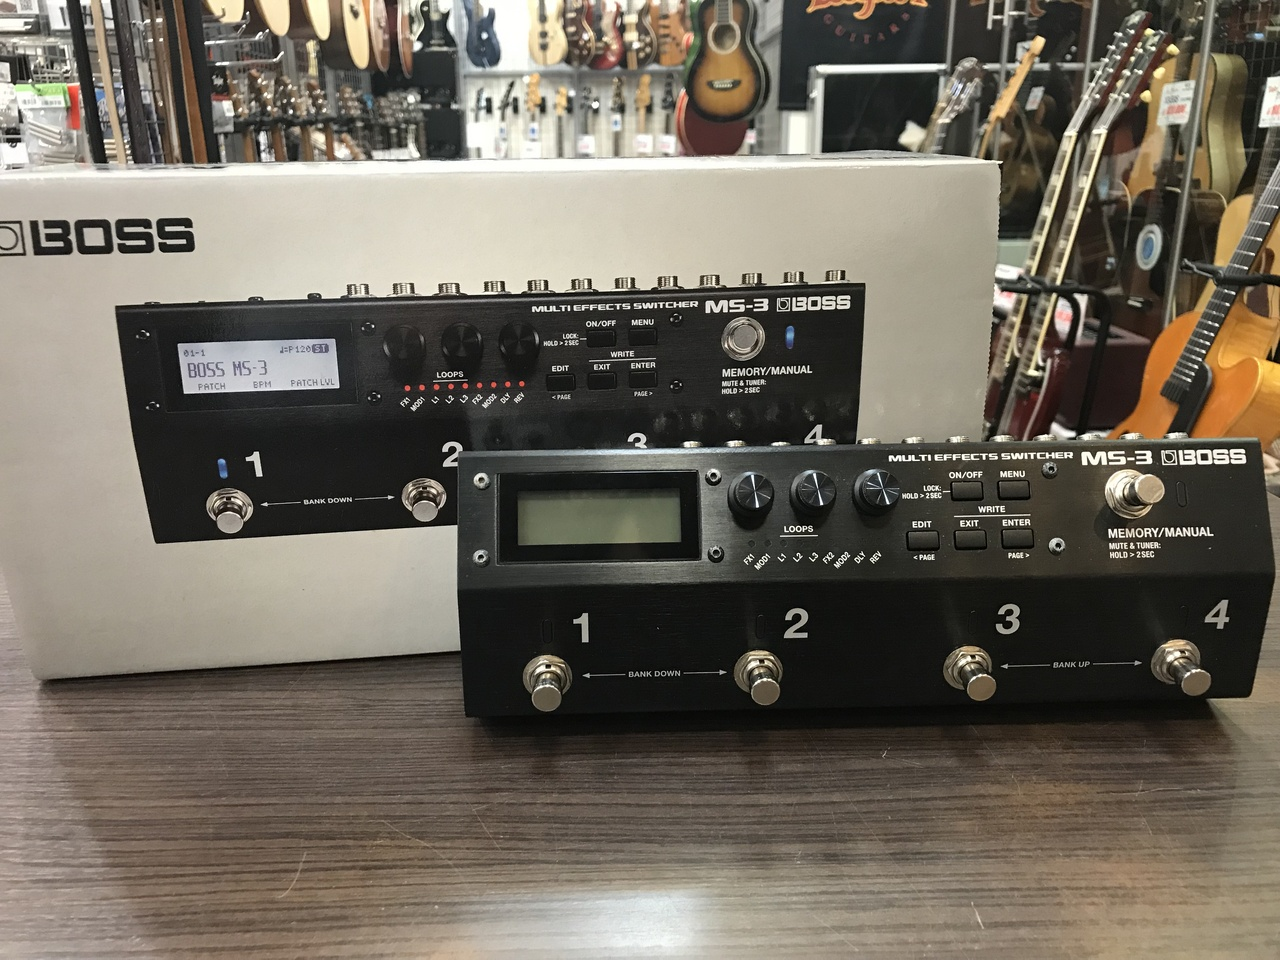 BOSS MS-3 Multi Effects Switcher [used article] [multi effector / Switcher]